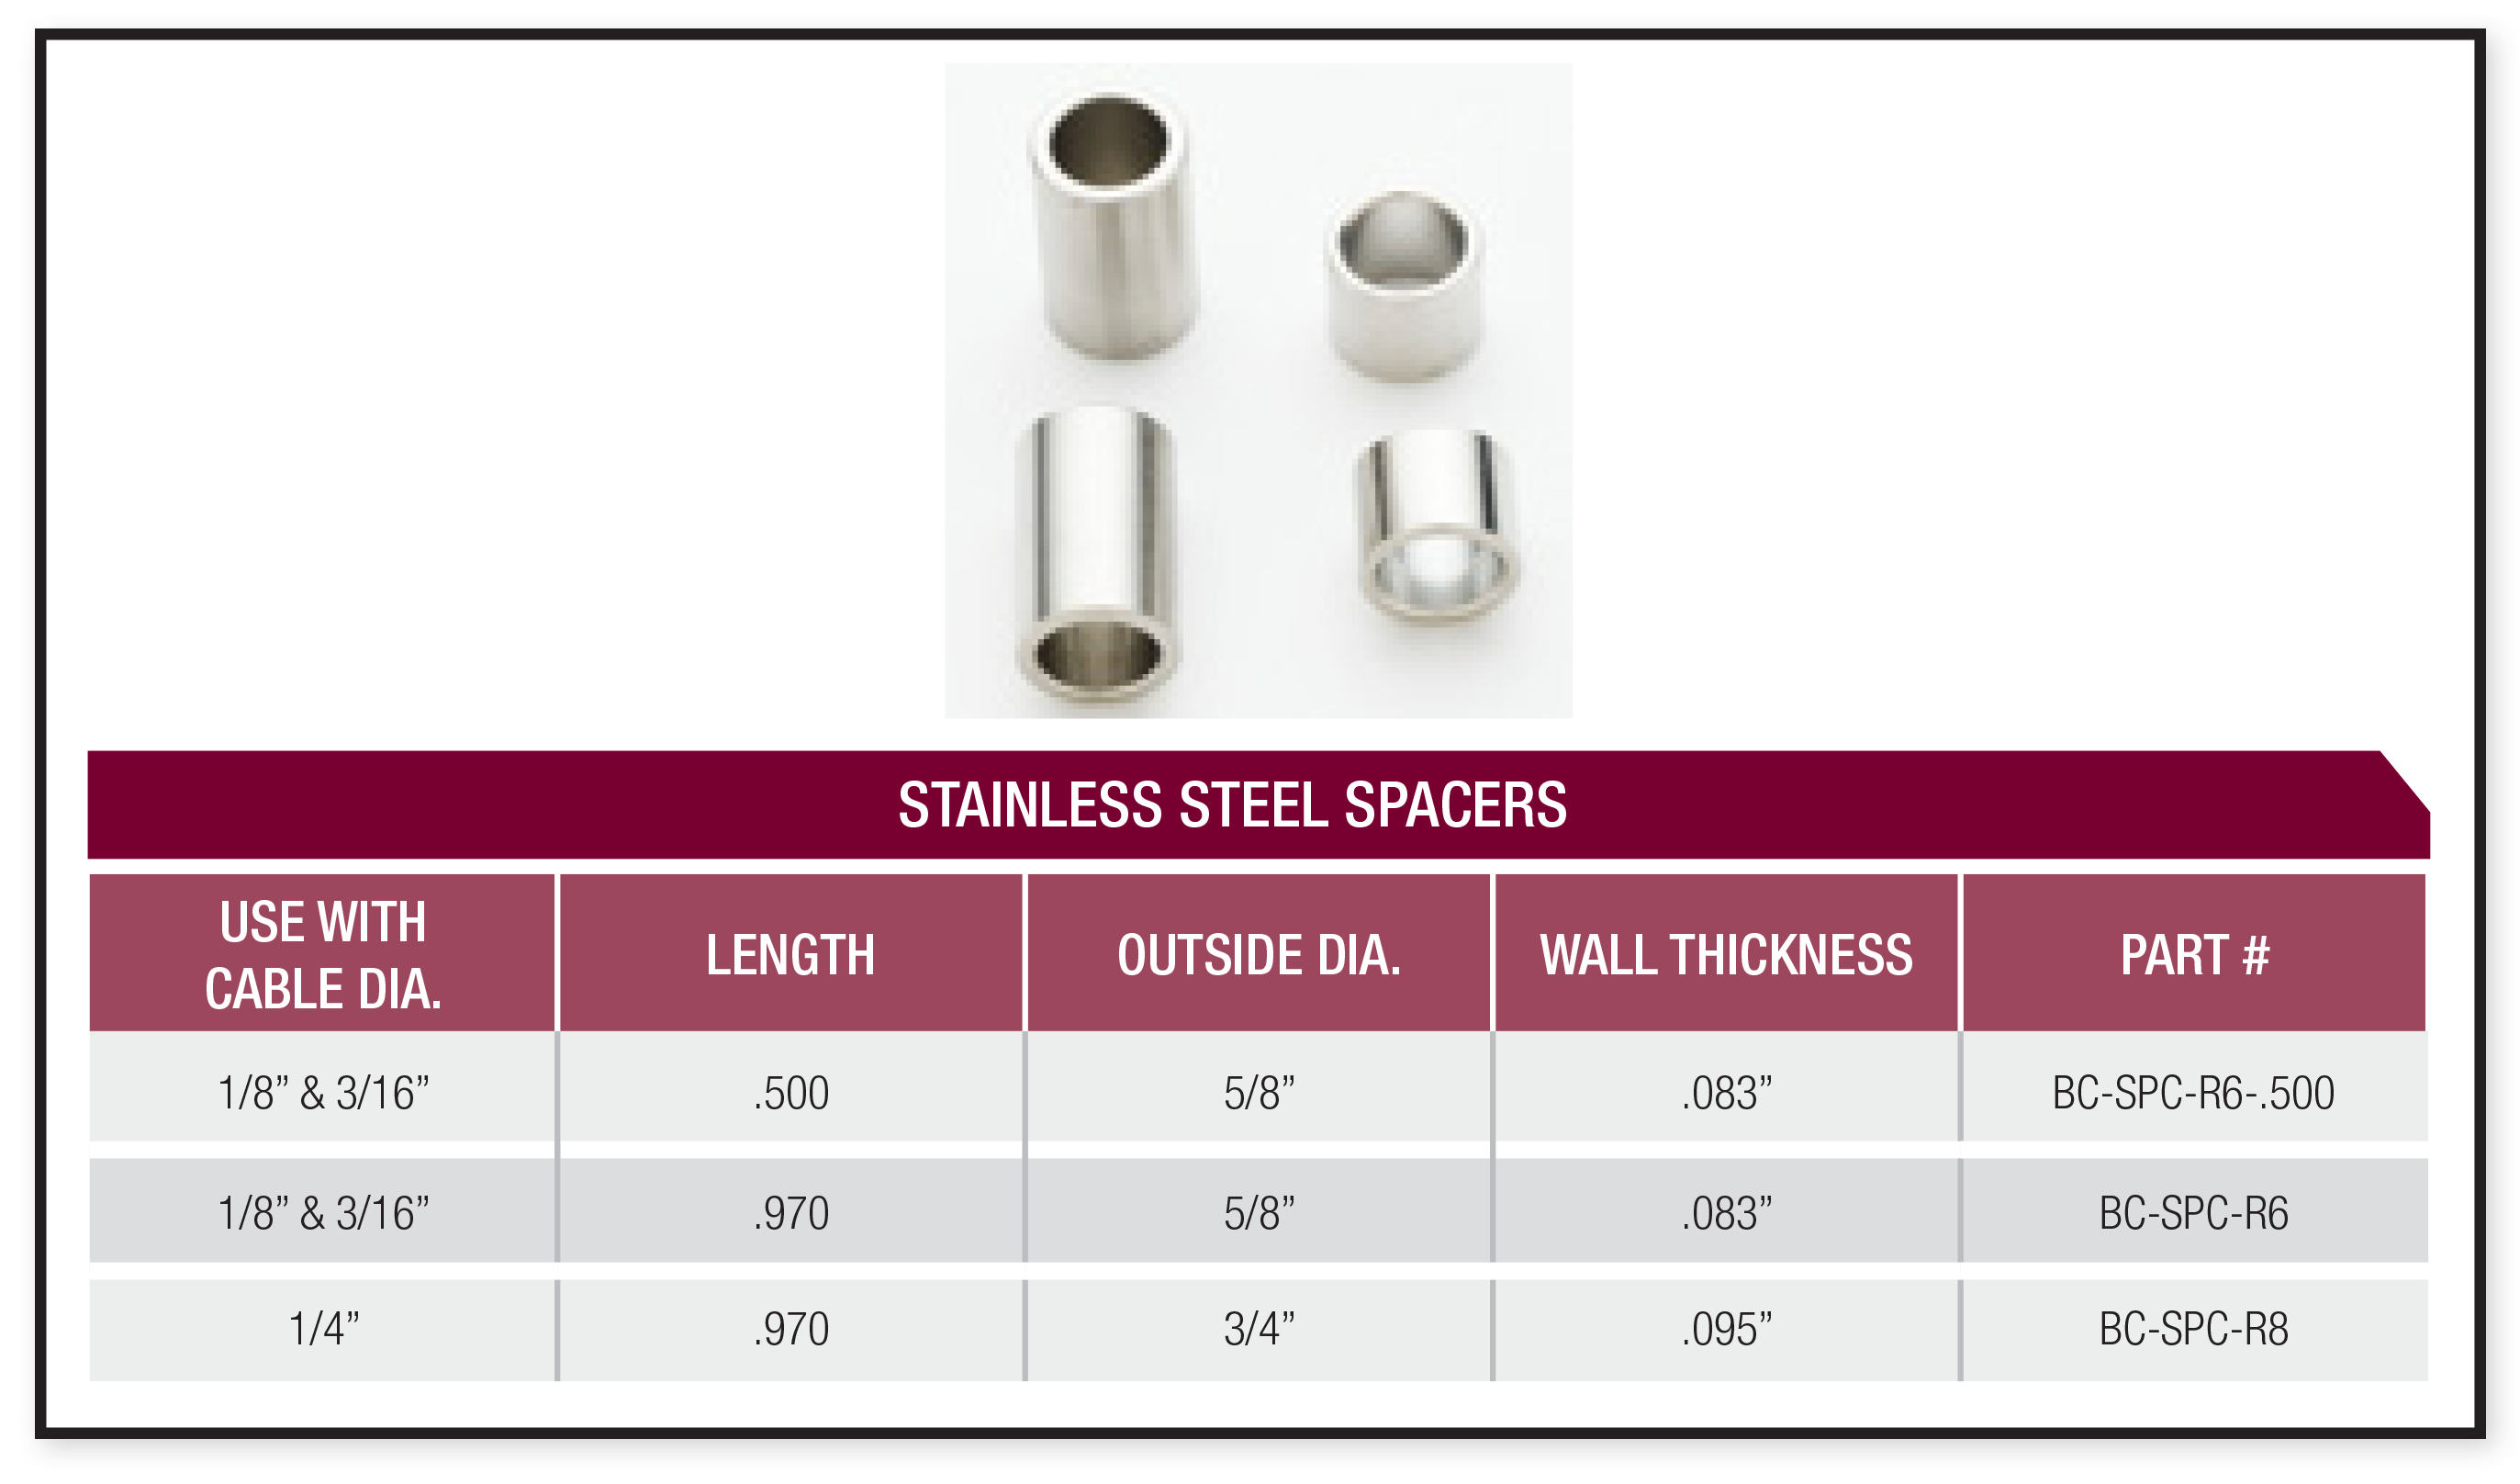 stainless steel spacer specifications